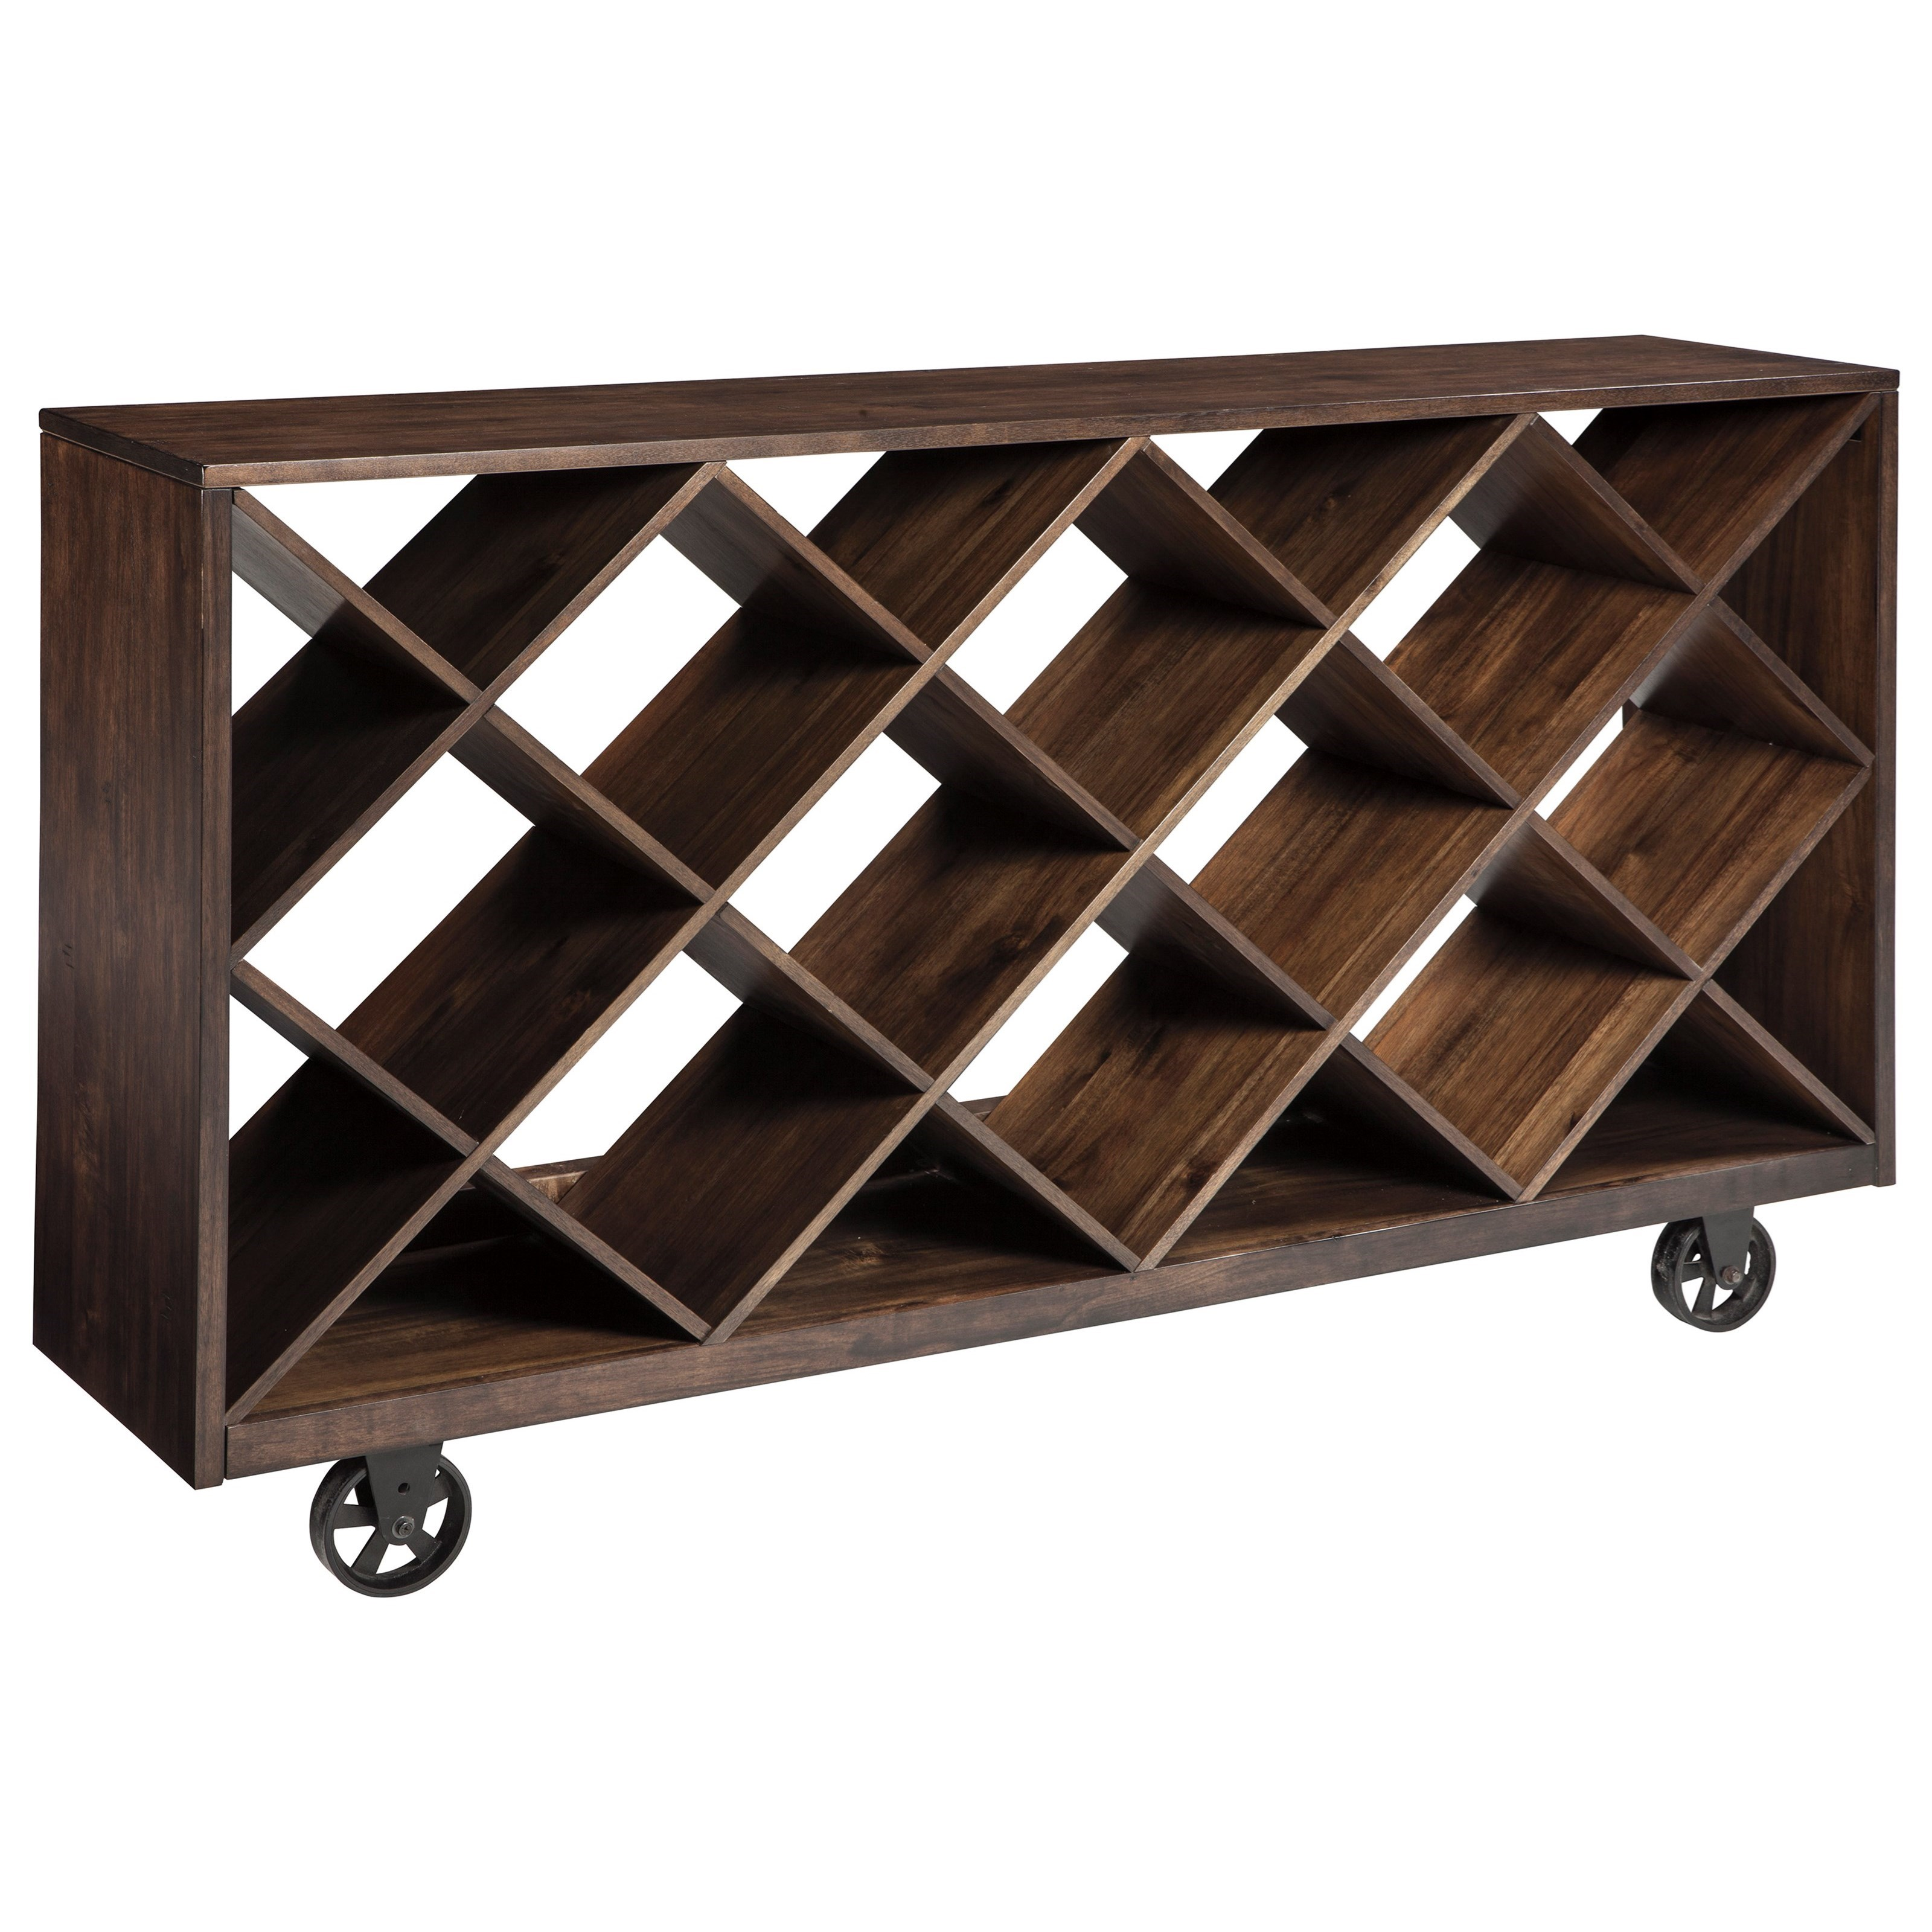 Signature Design by Ashley Starmore Shelf/Console Table - Item Number: T913-5